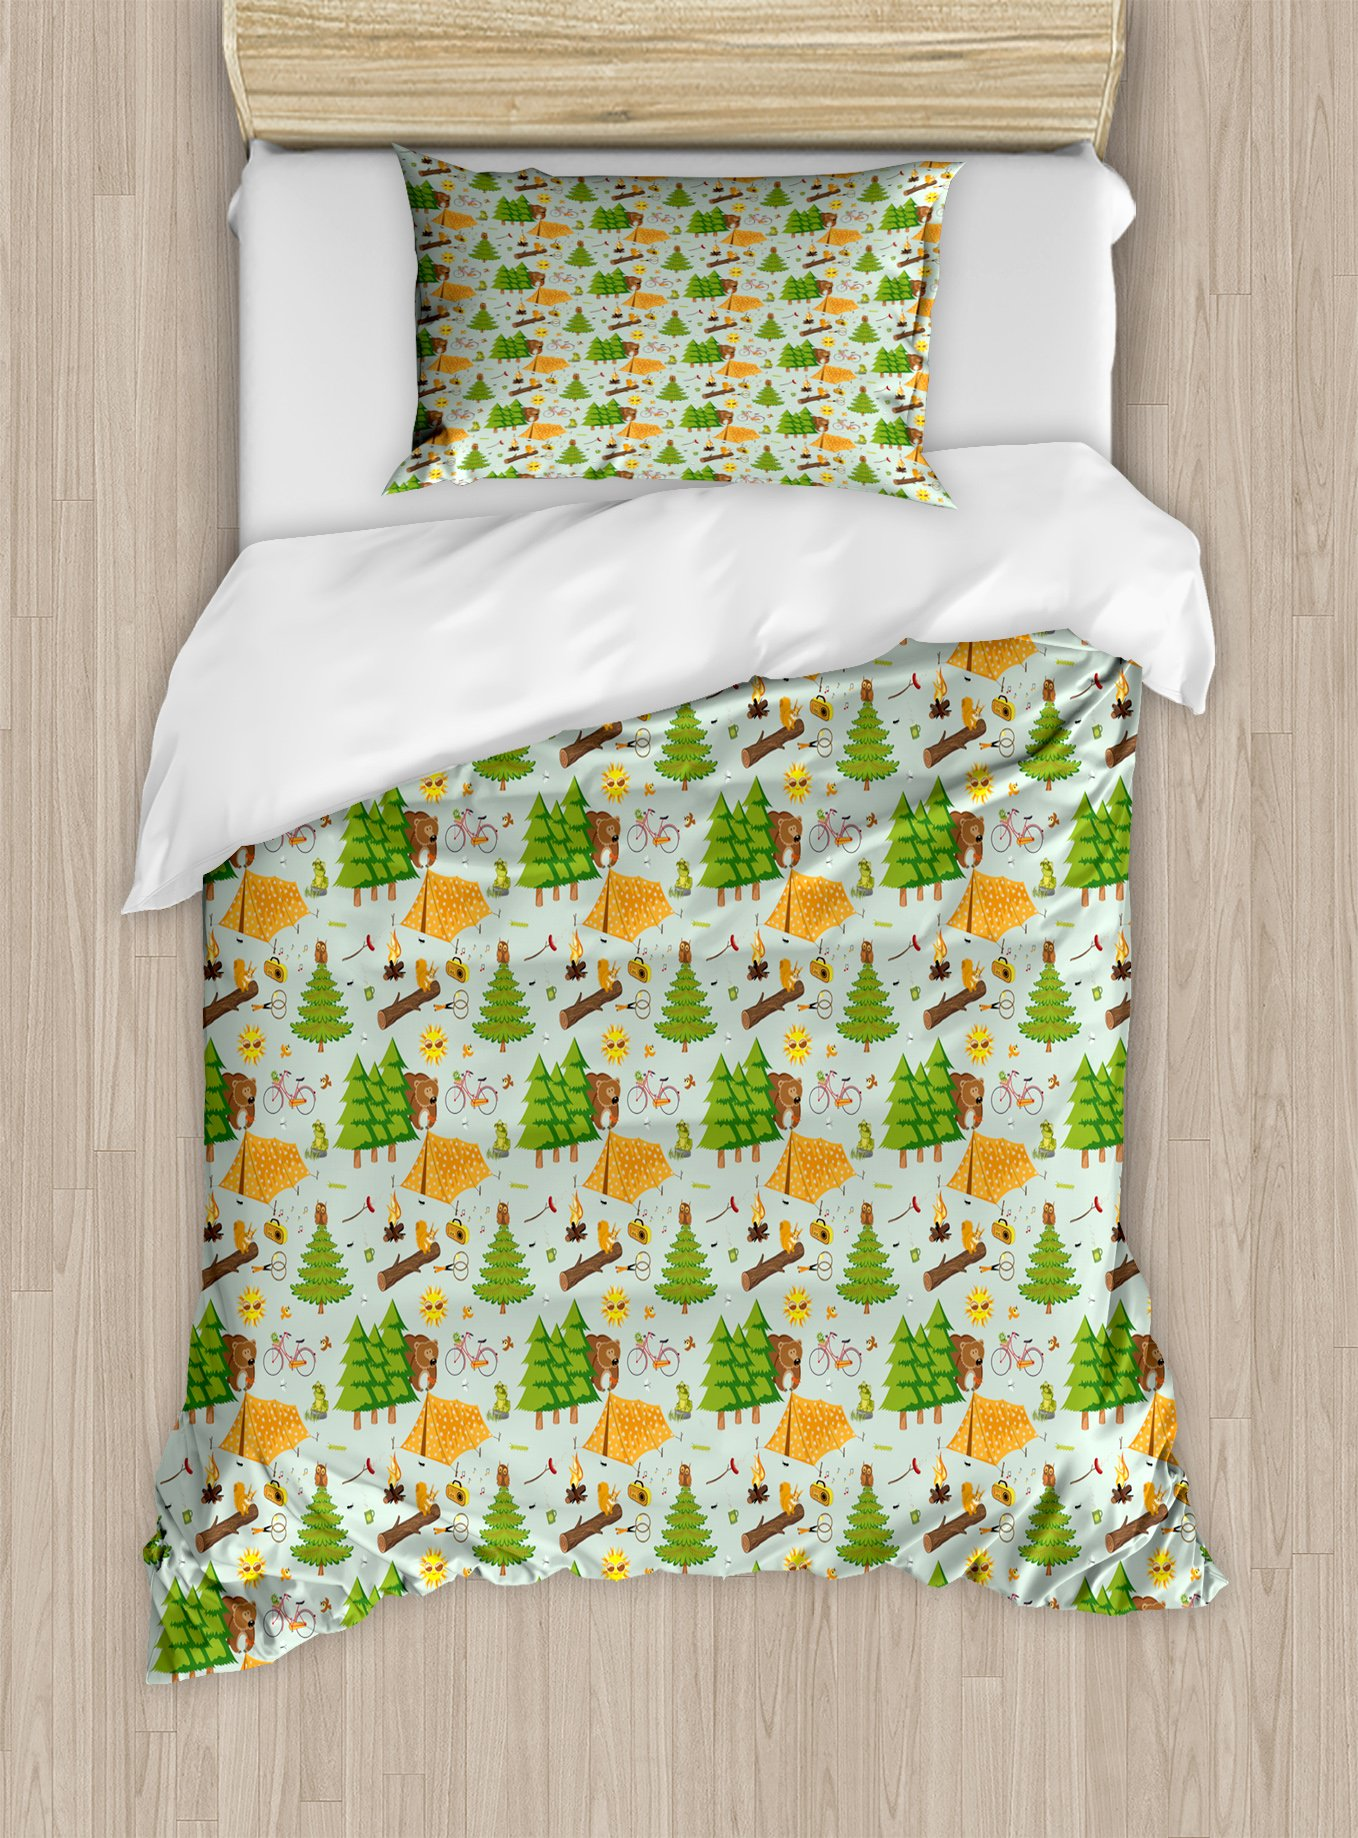 Lunarable Camping Twin Size Duvet Cover Set, Summer Season Camping in Woods with Bear Toad Squirrel Owl Outdoor Nature Cartoon, Decorative 2 Piece Bedding Set with 1 Pillow Sham, Multicolor by Lunarable (Image #1)